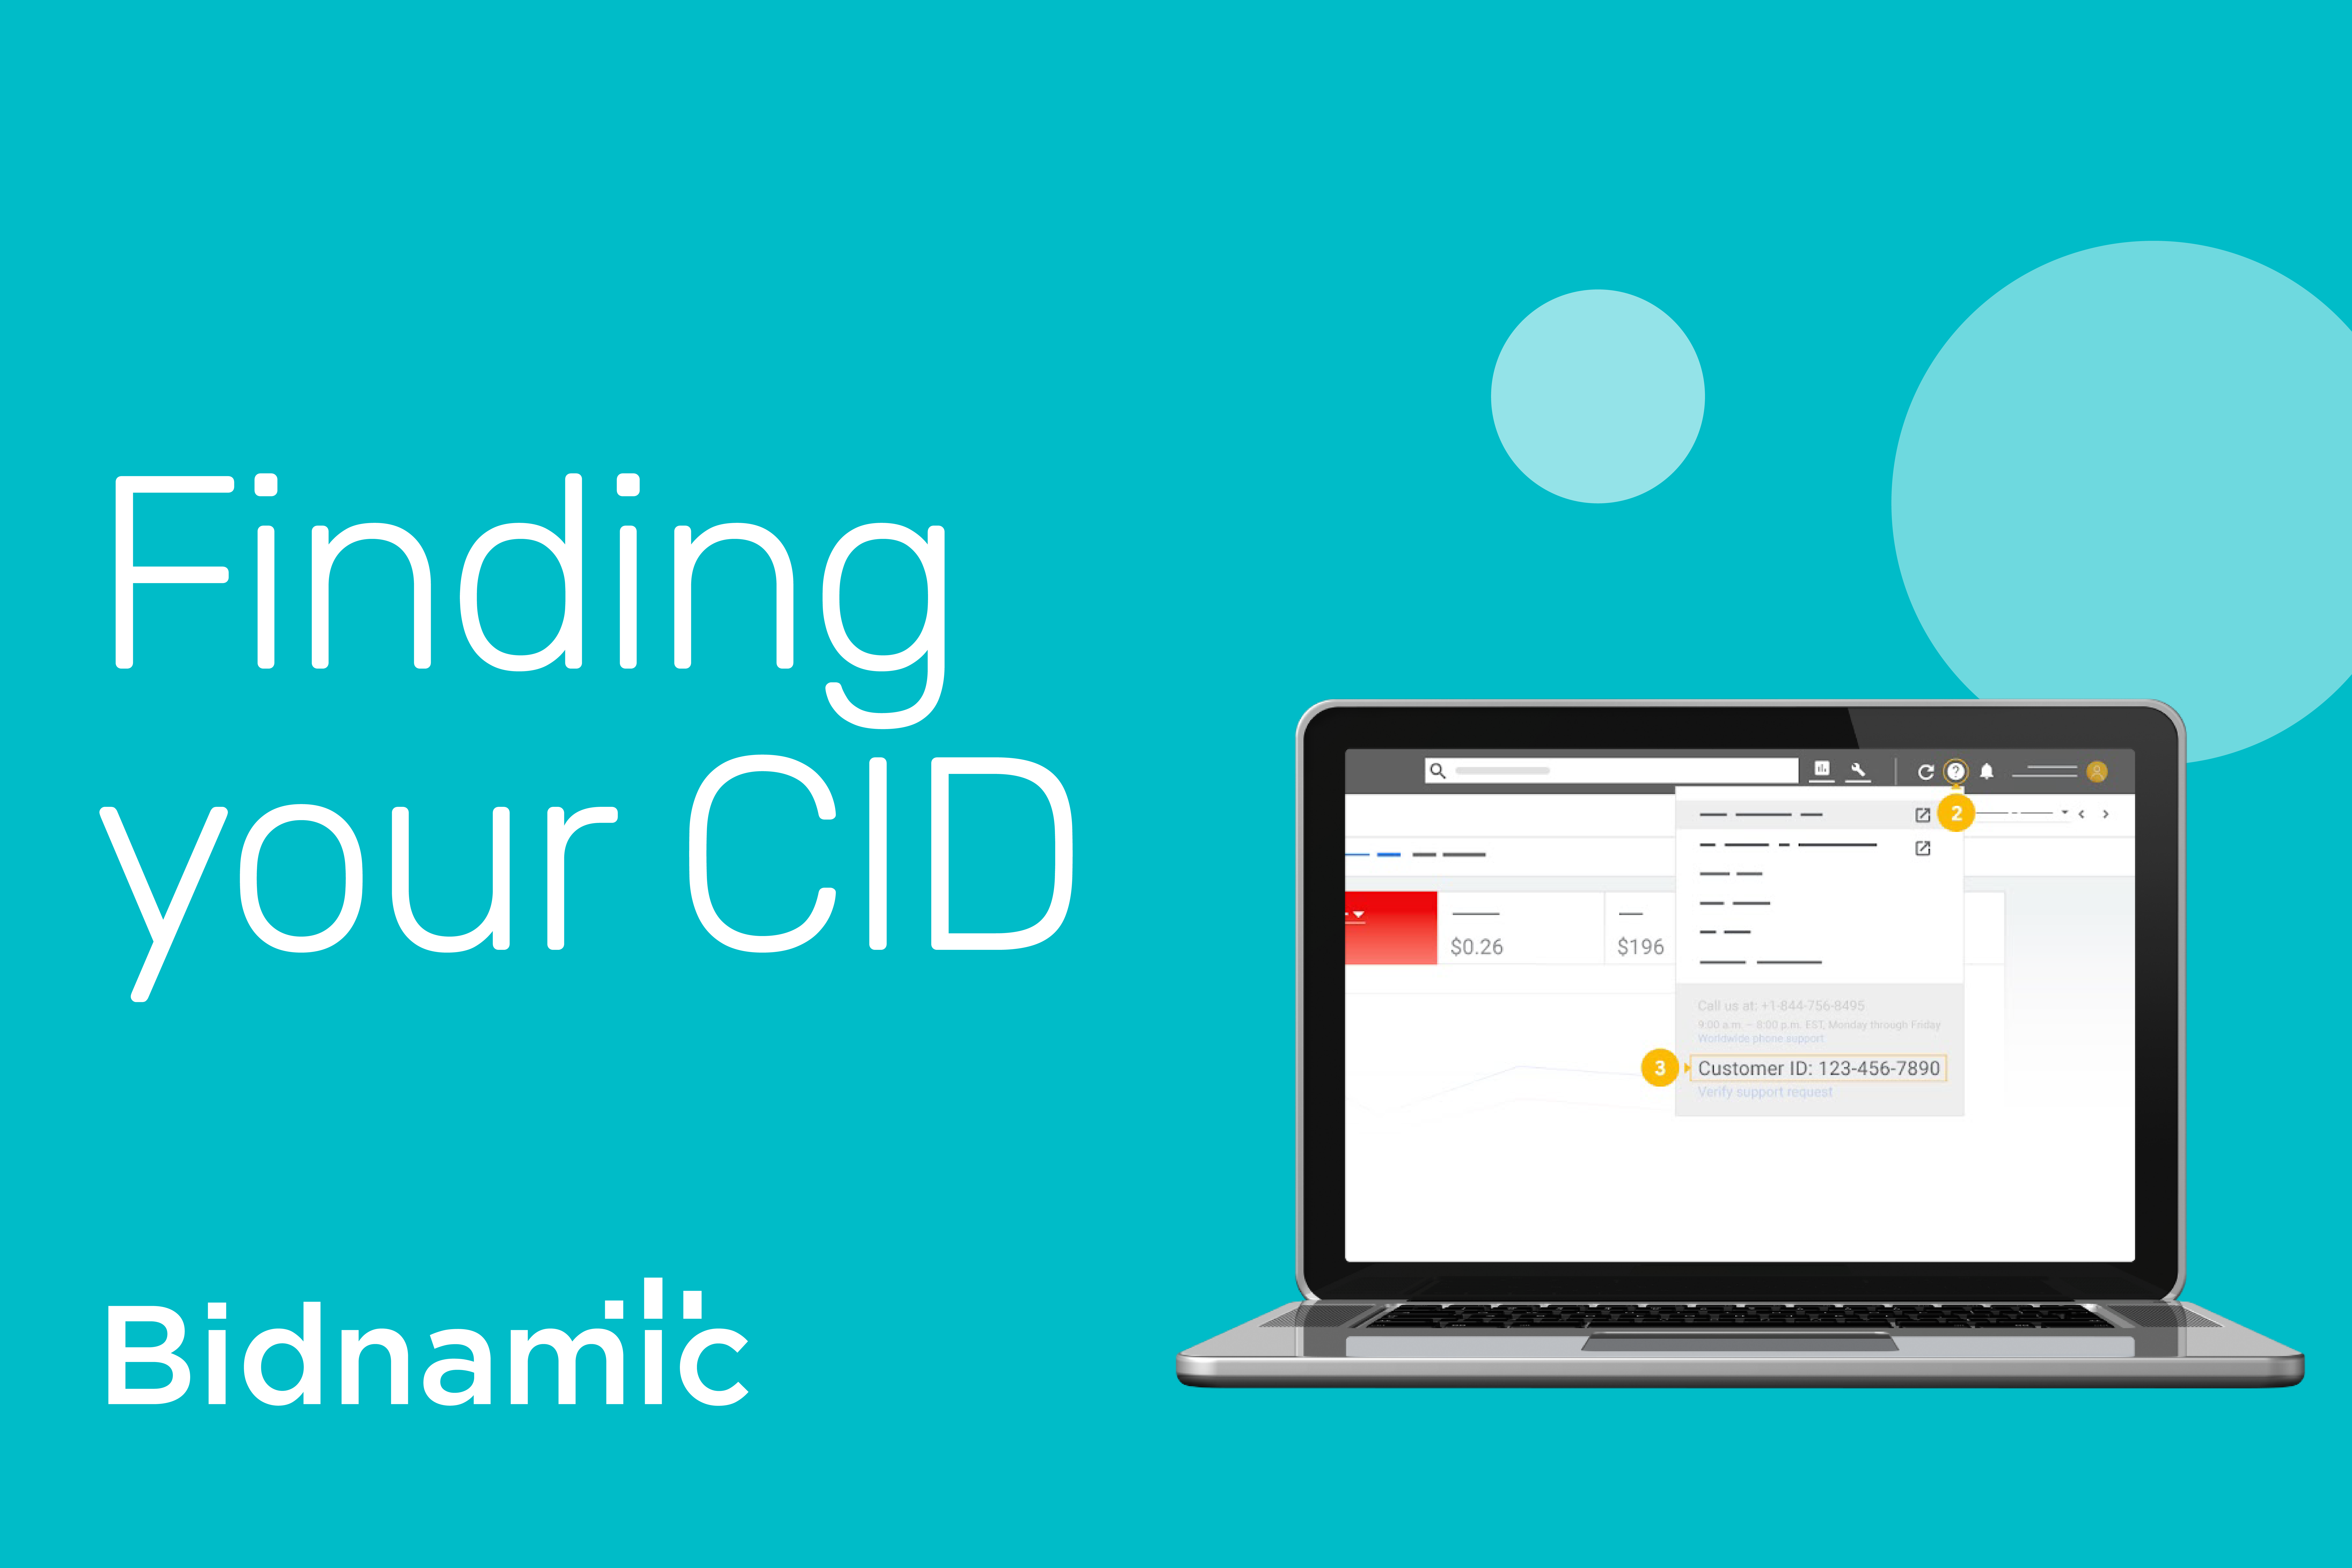 Bidnamic's guide to finding your CID number